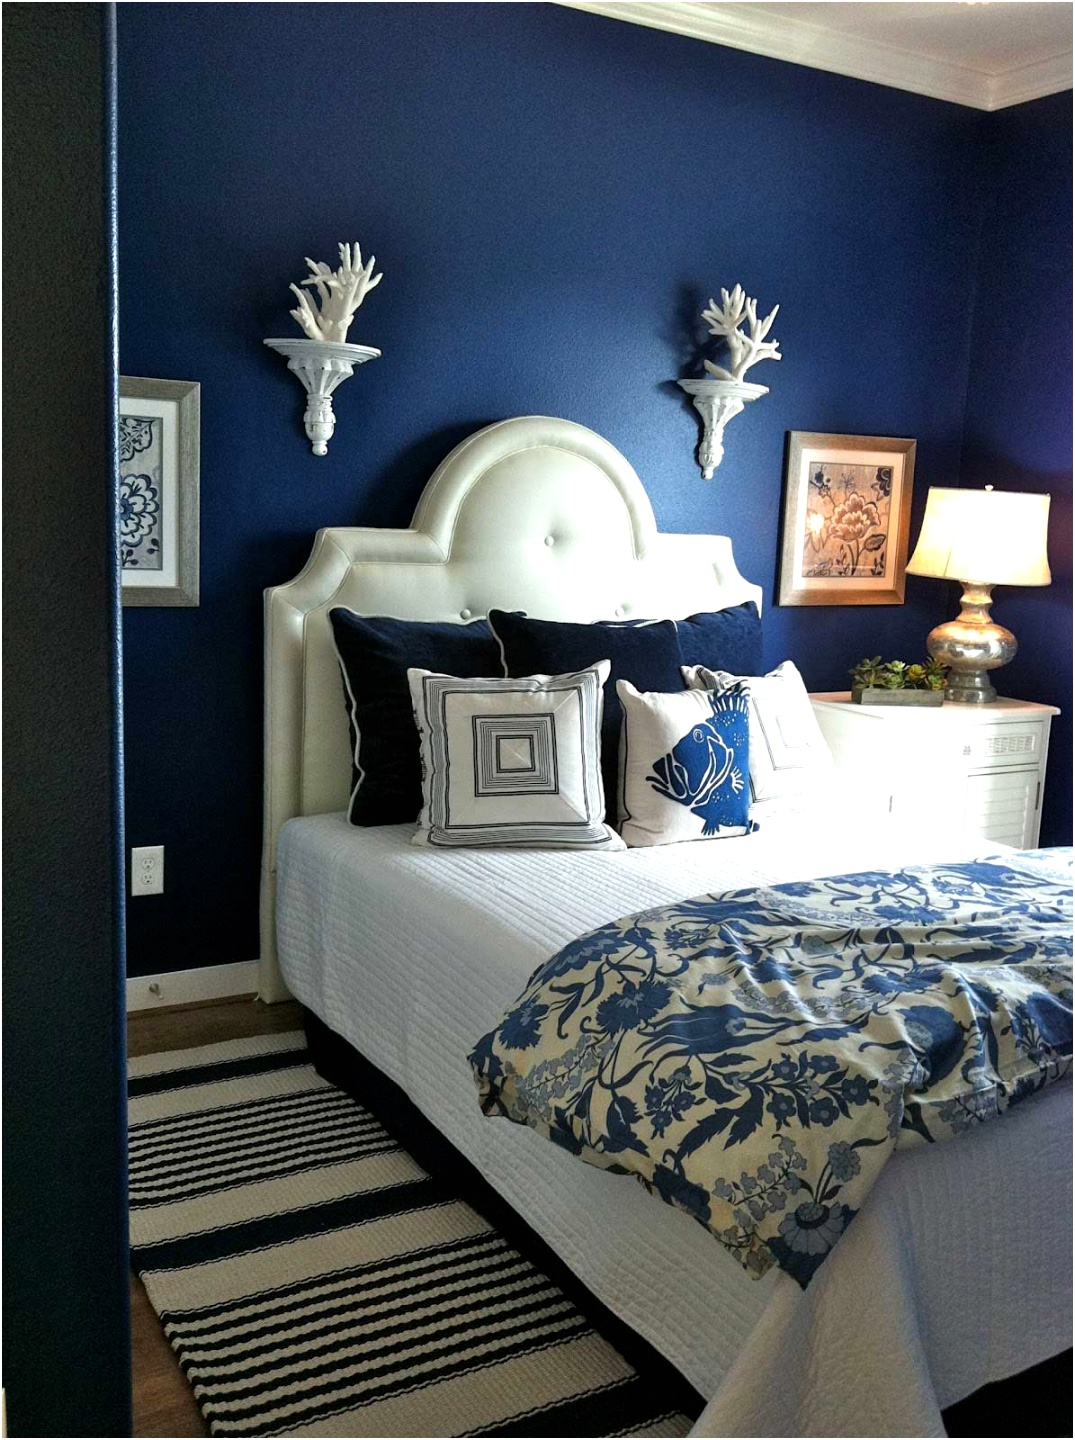 Smaller bedroom with navy blue walls